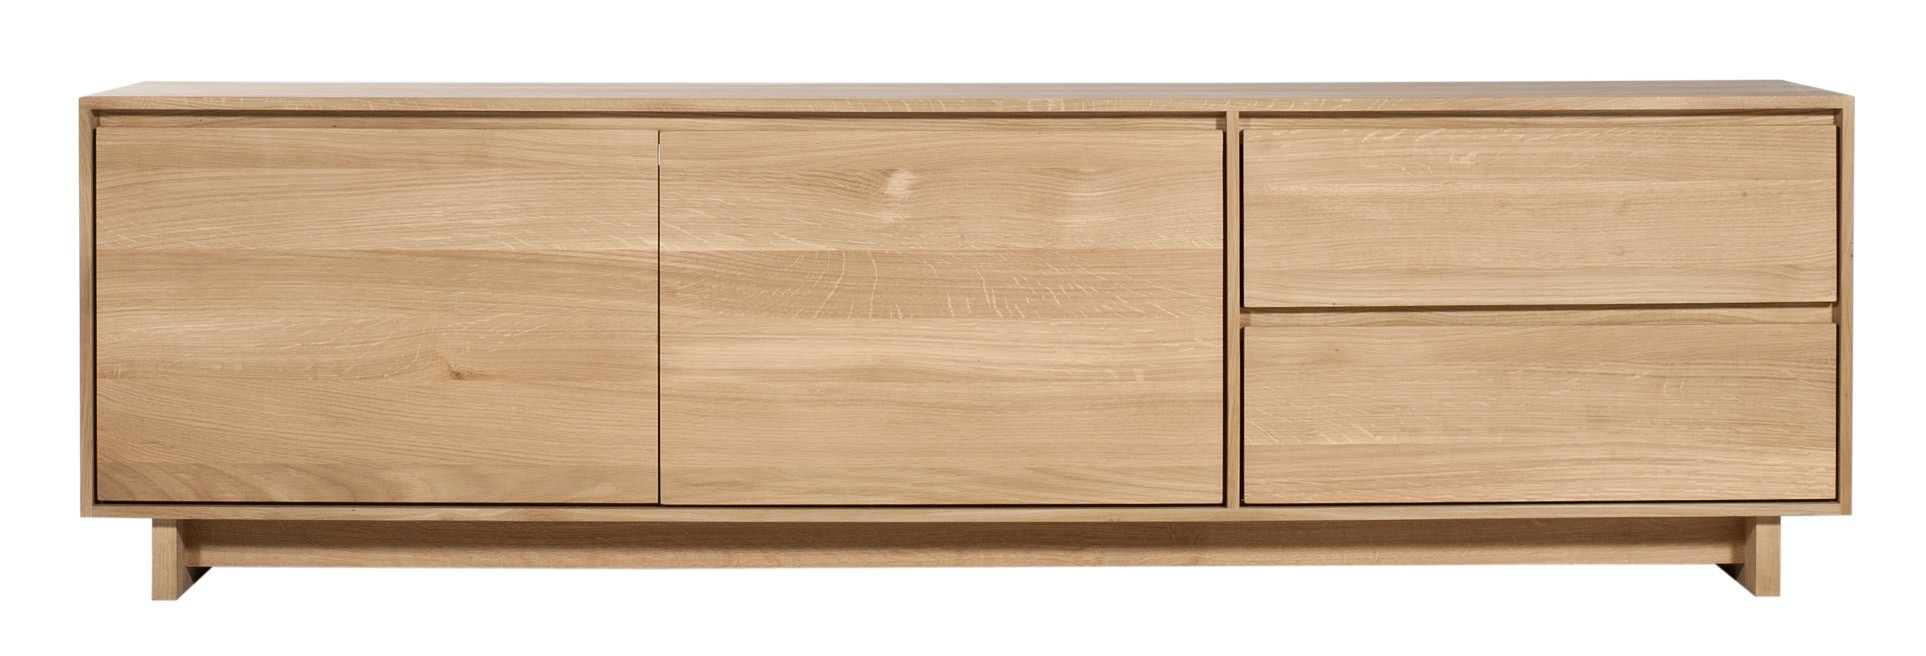 Meuble tv OAK WAVE d Ethnicraft 2 porte 1 porte abattante 1 tiroir